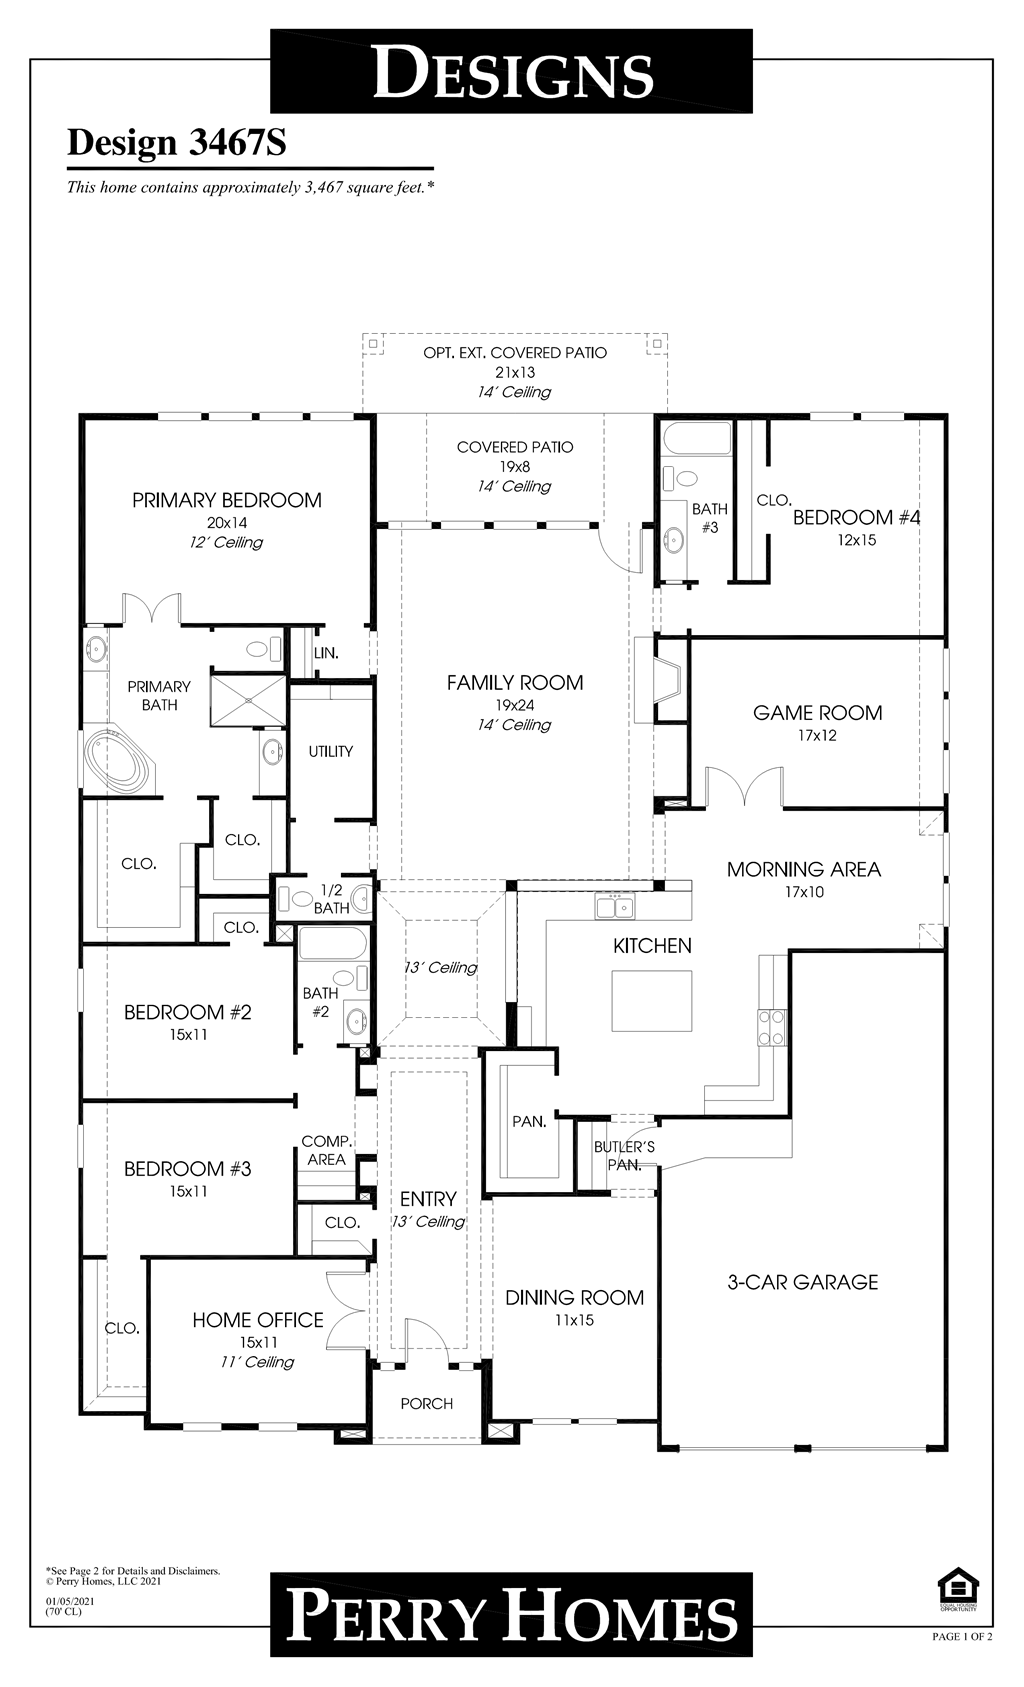 Floor Plan for 3467S